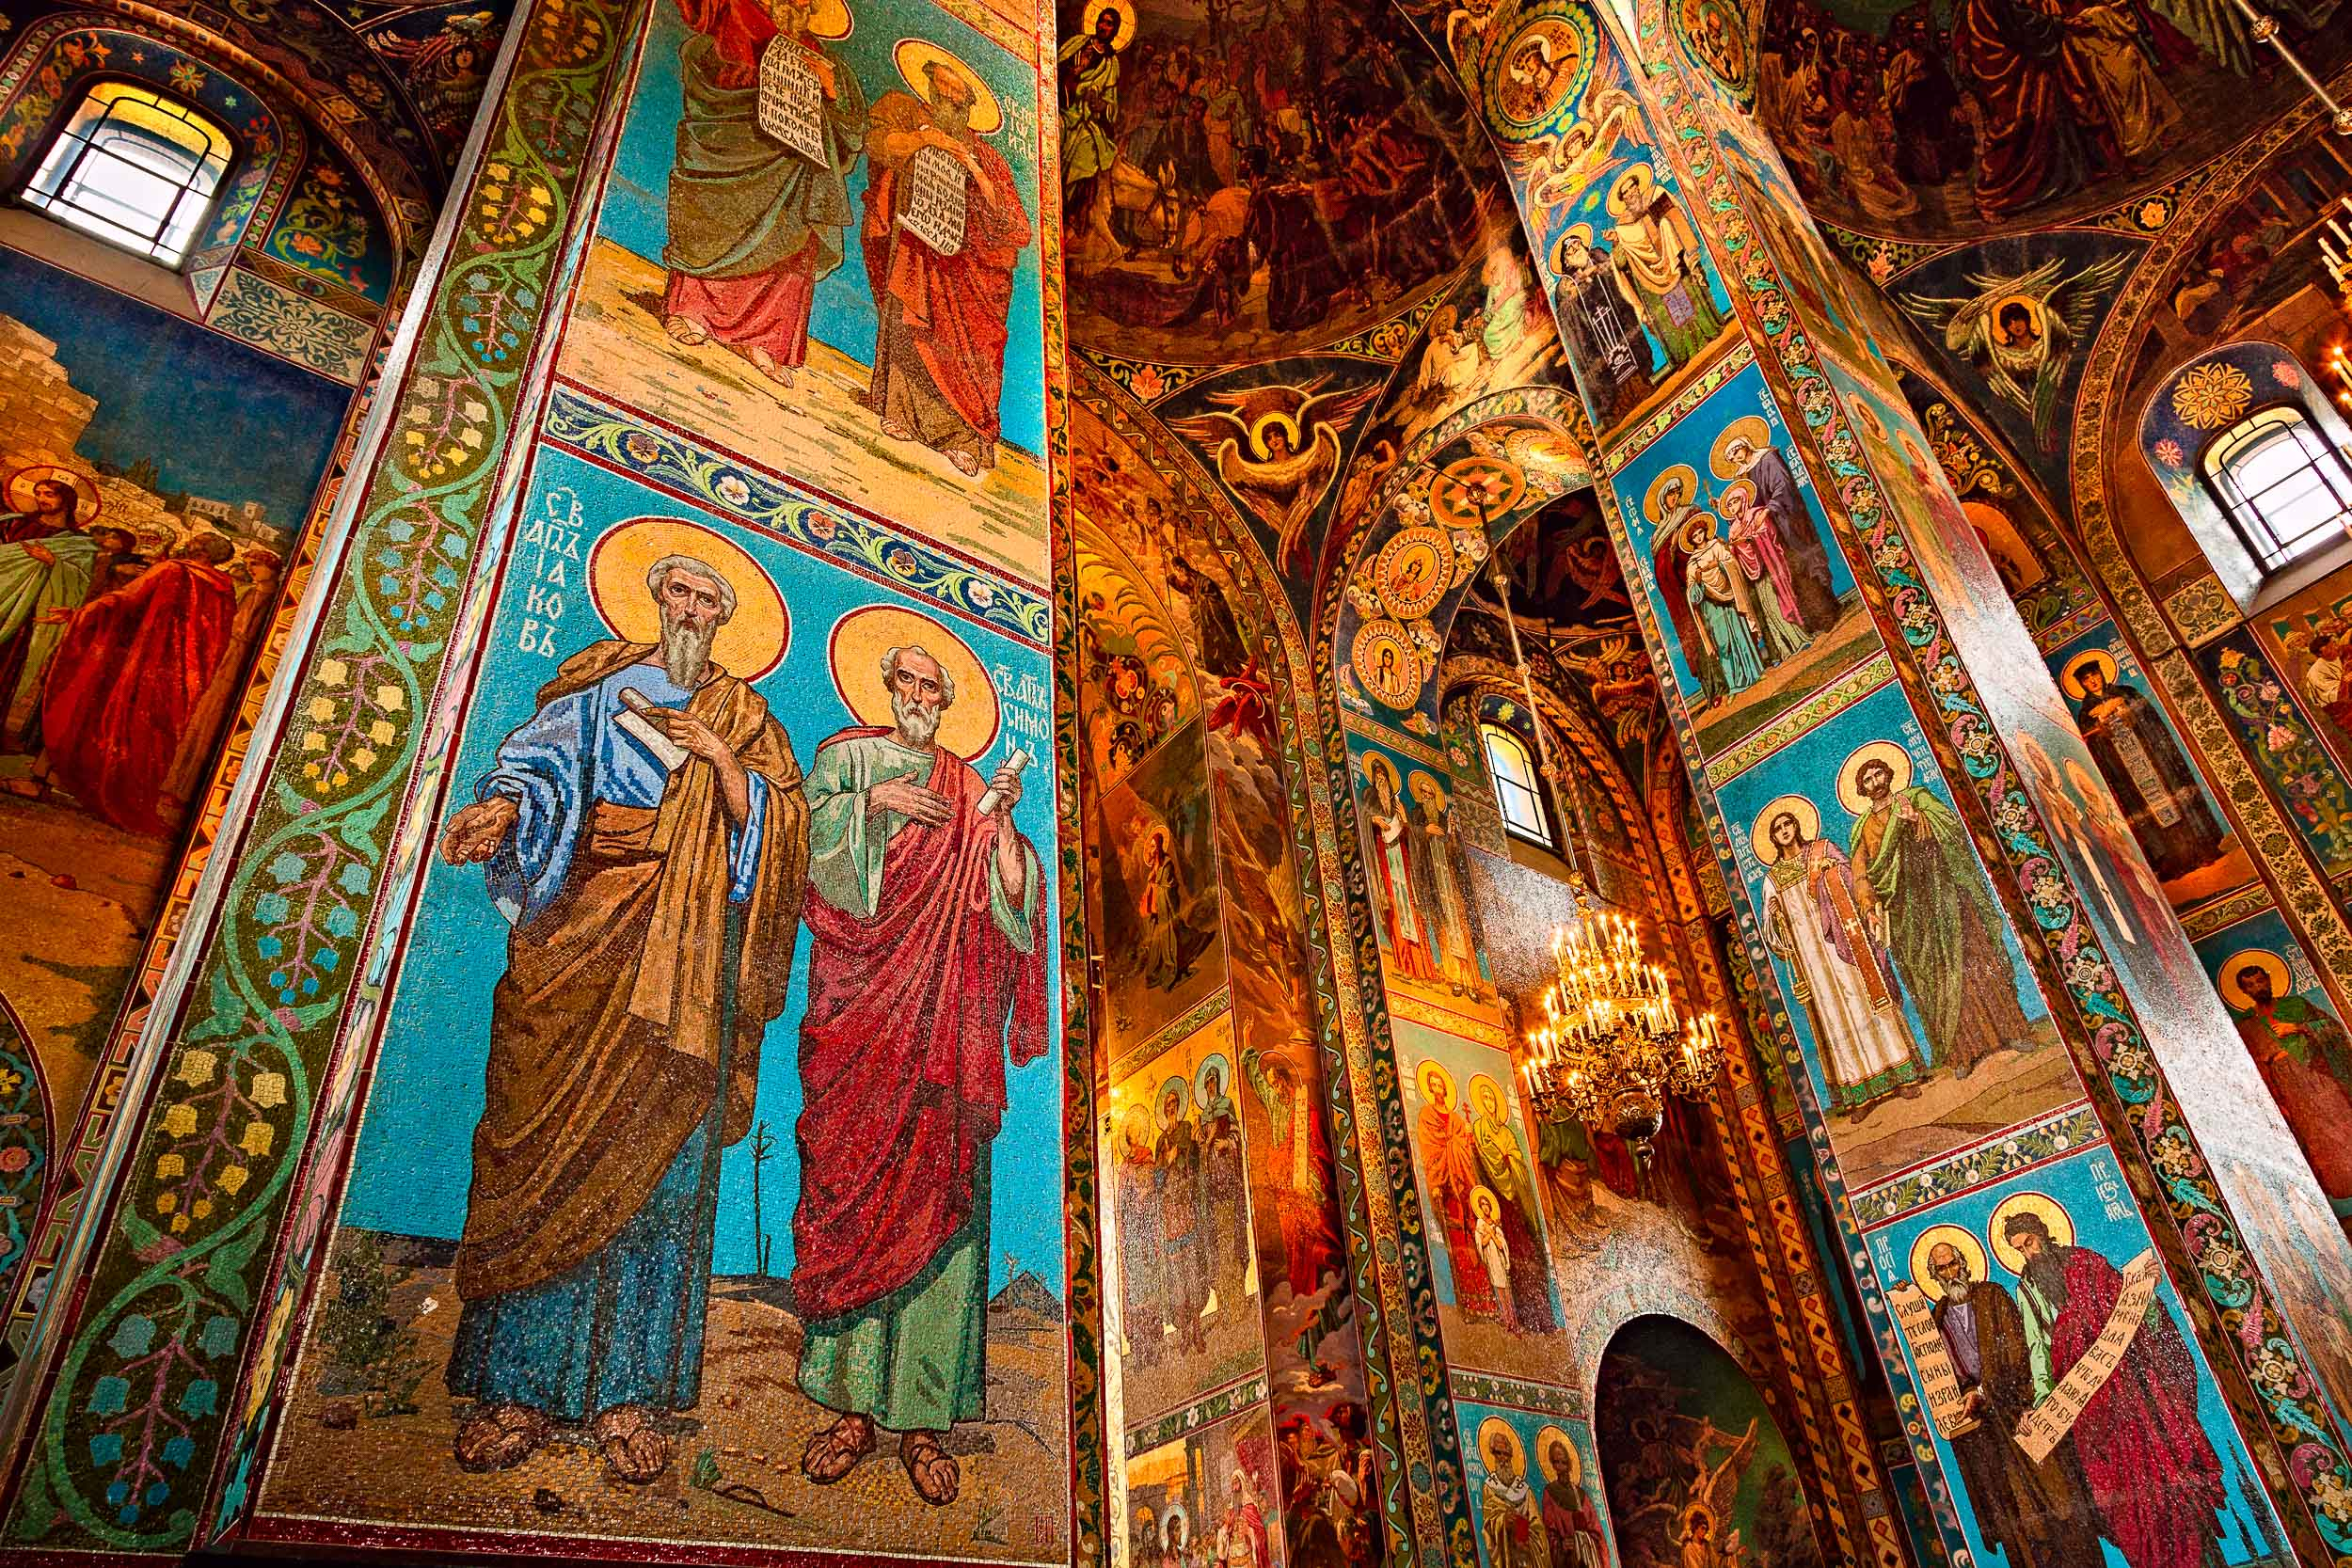 Very  colorful mosaics  in the interior of the spectacular  Church of the Savior on the Spilled Blood  in  St. Petersburg, Russia